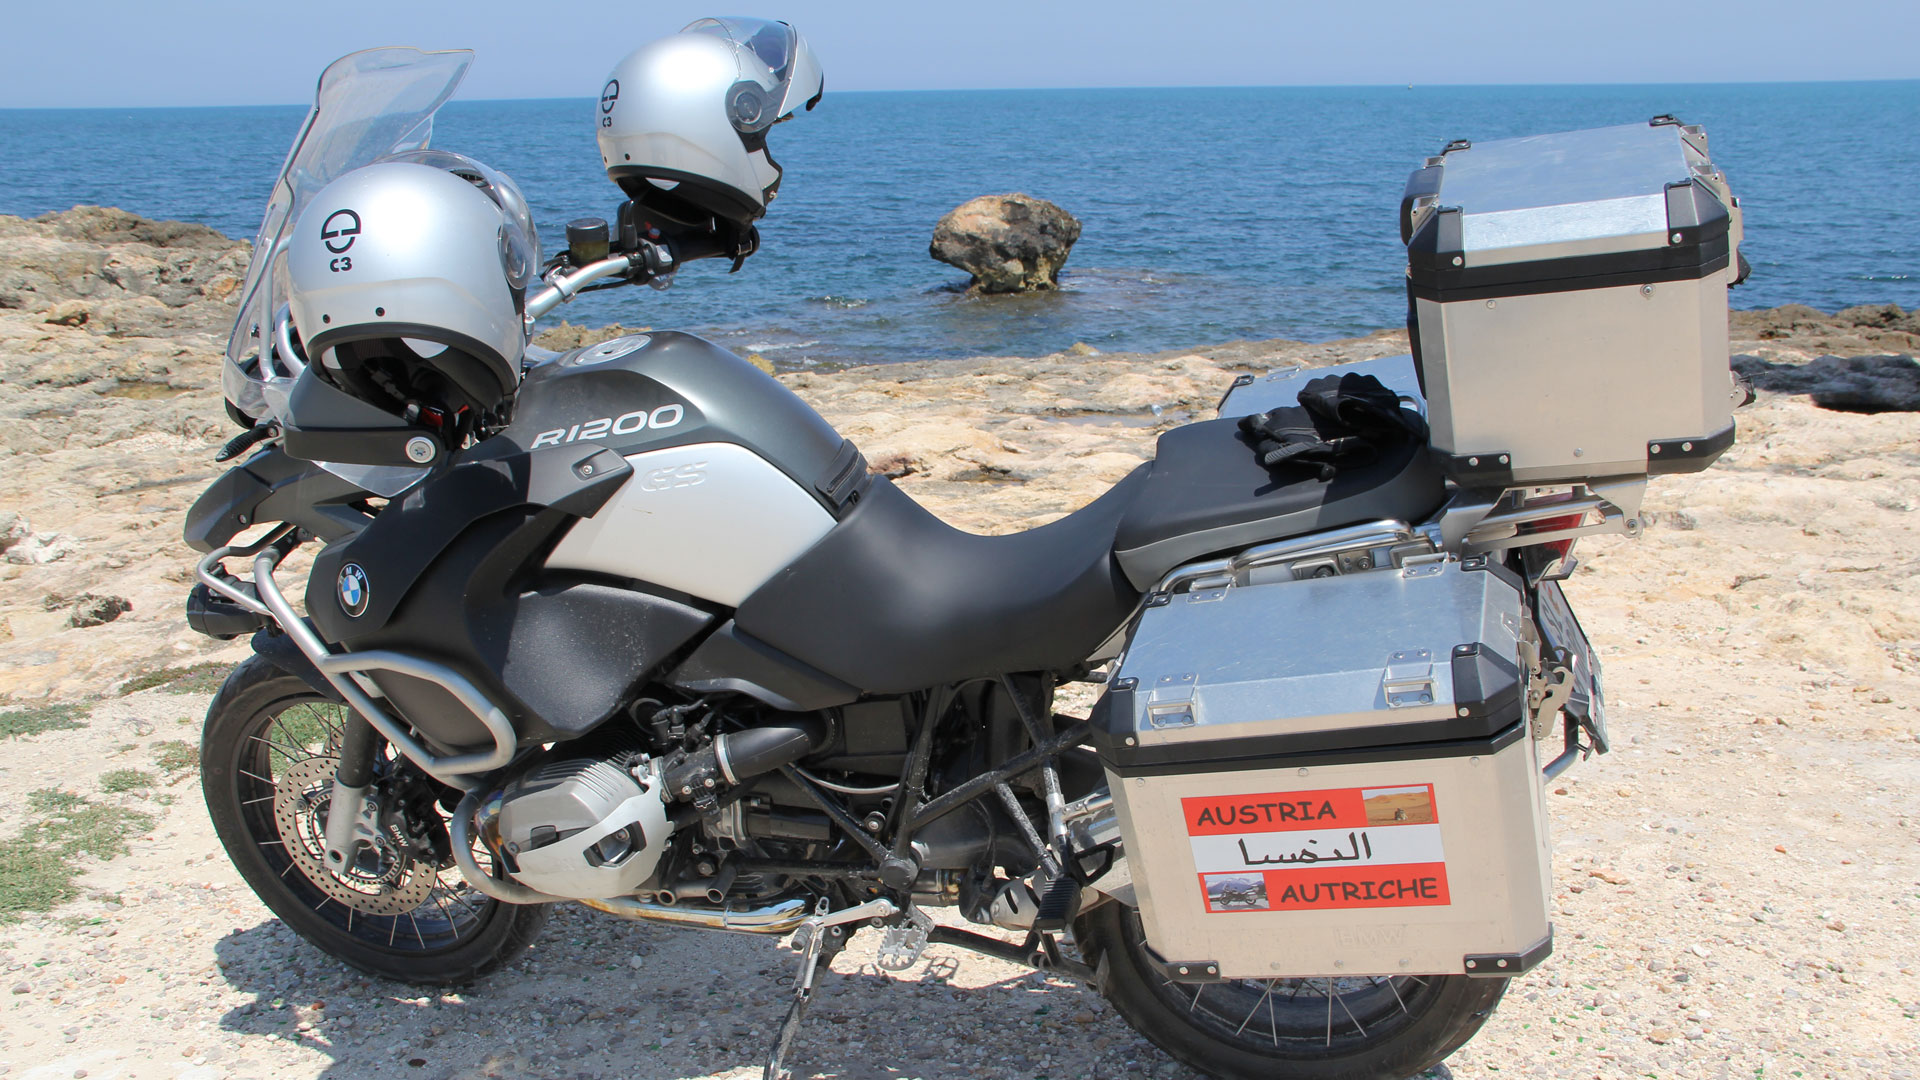 BMW GS Adventure 1200